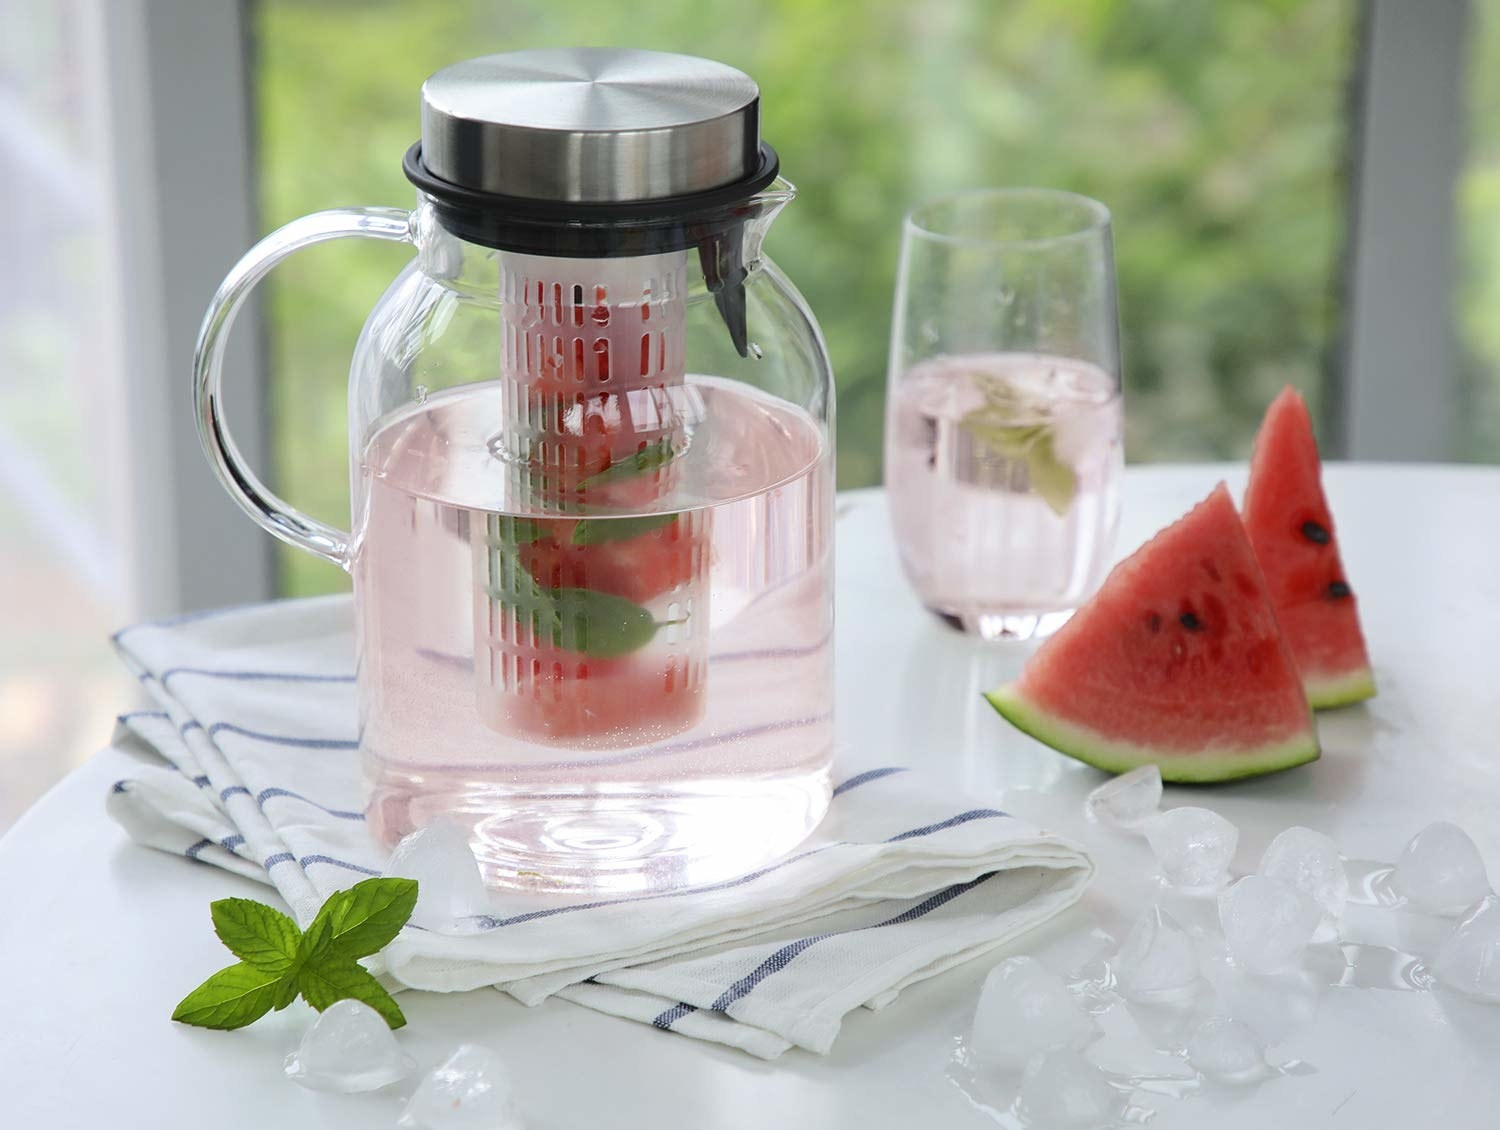 the pitcher with watermelon